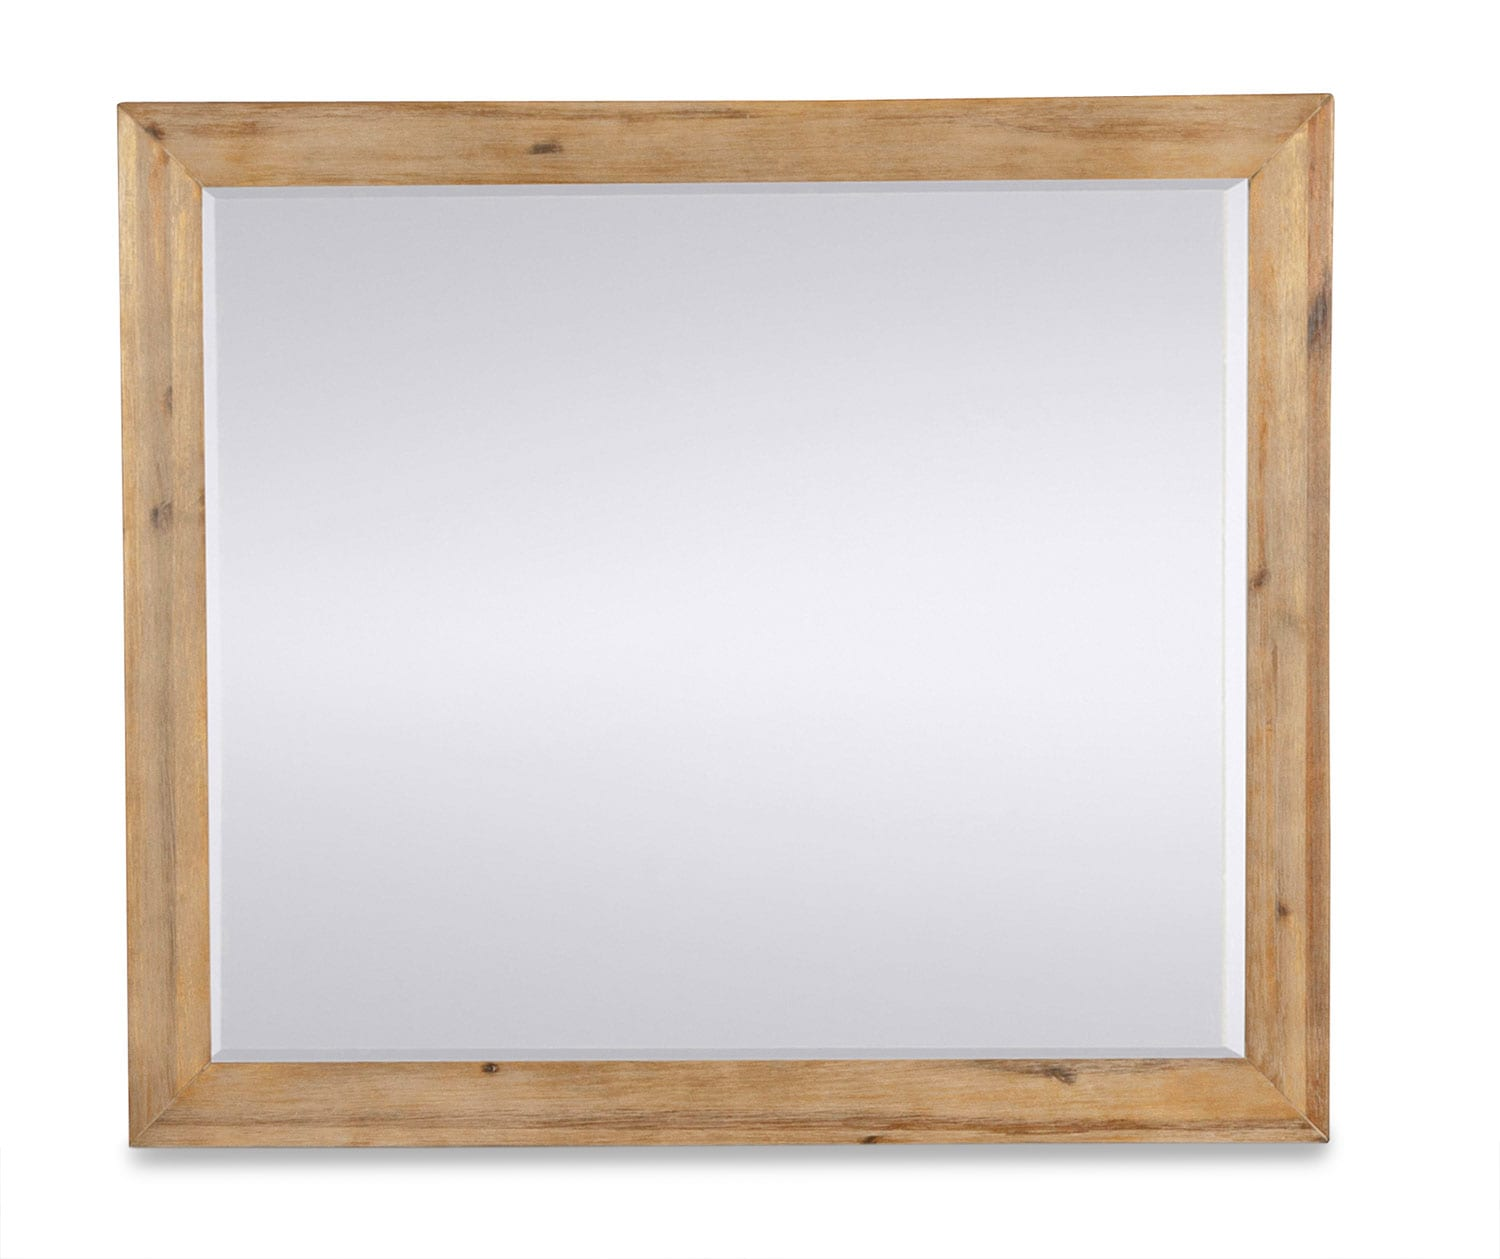 Annabella Mirror - Brushed Acacia